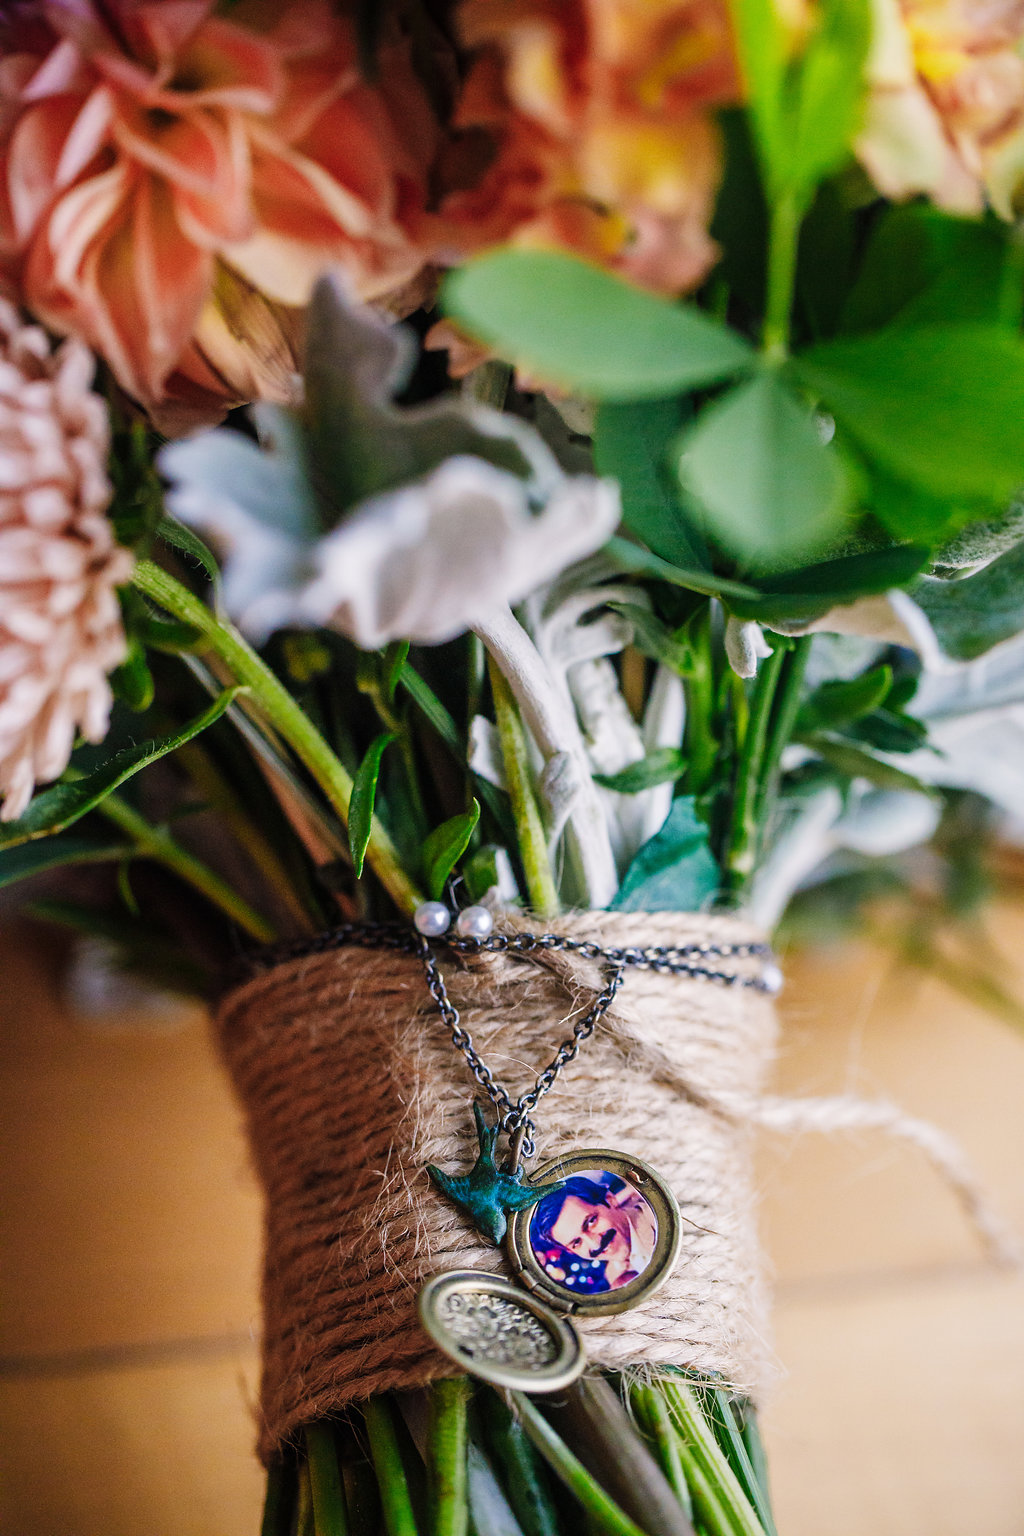 brielle-davis-events-photography-by-brea-linganore-winery-james-sarah-wedding-bouquet-locket-keepsake.jpg